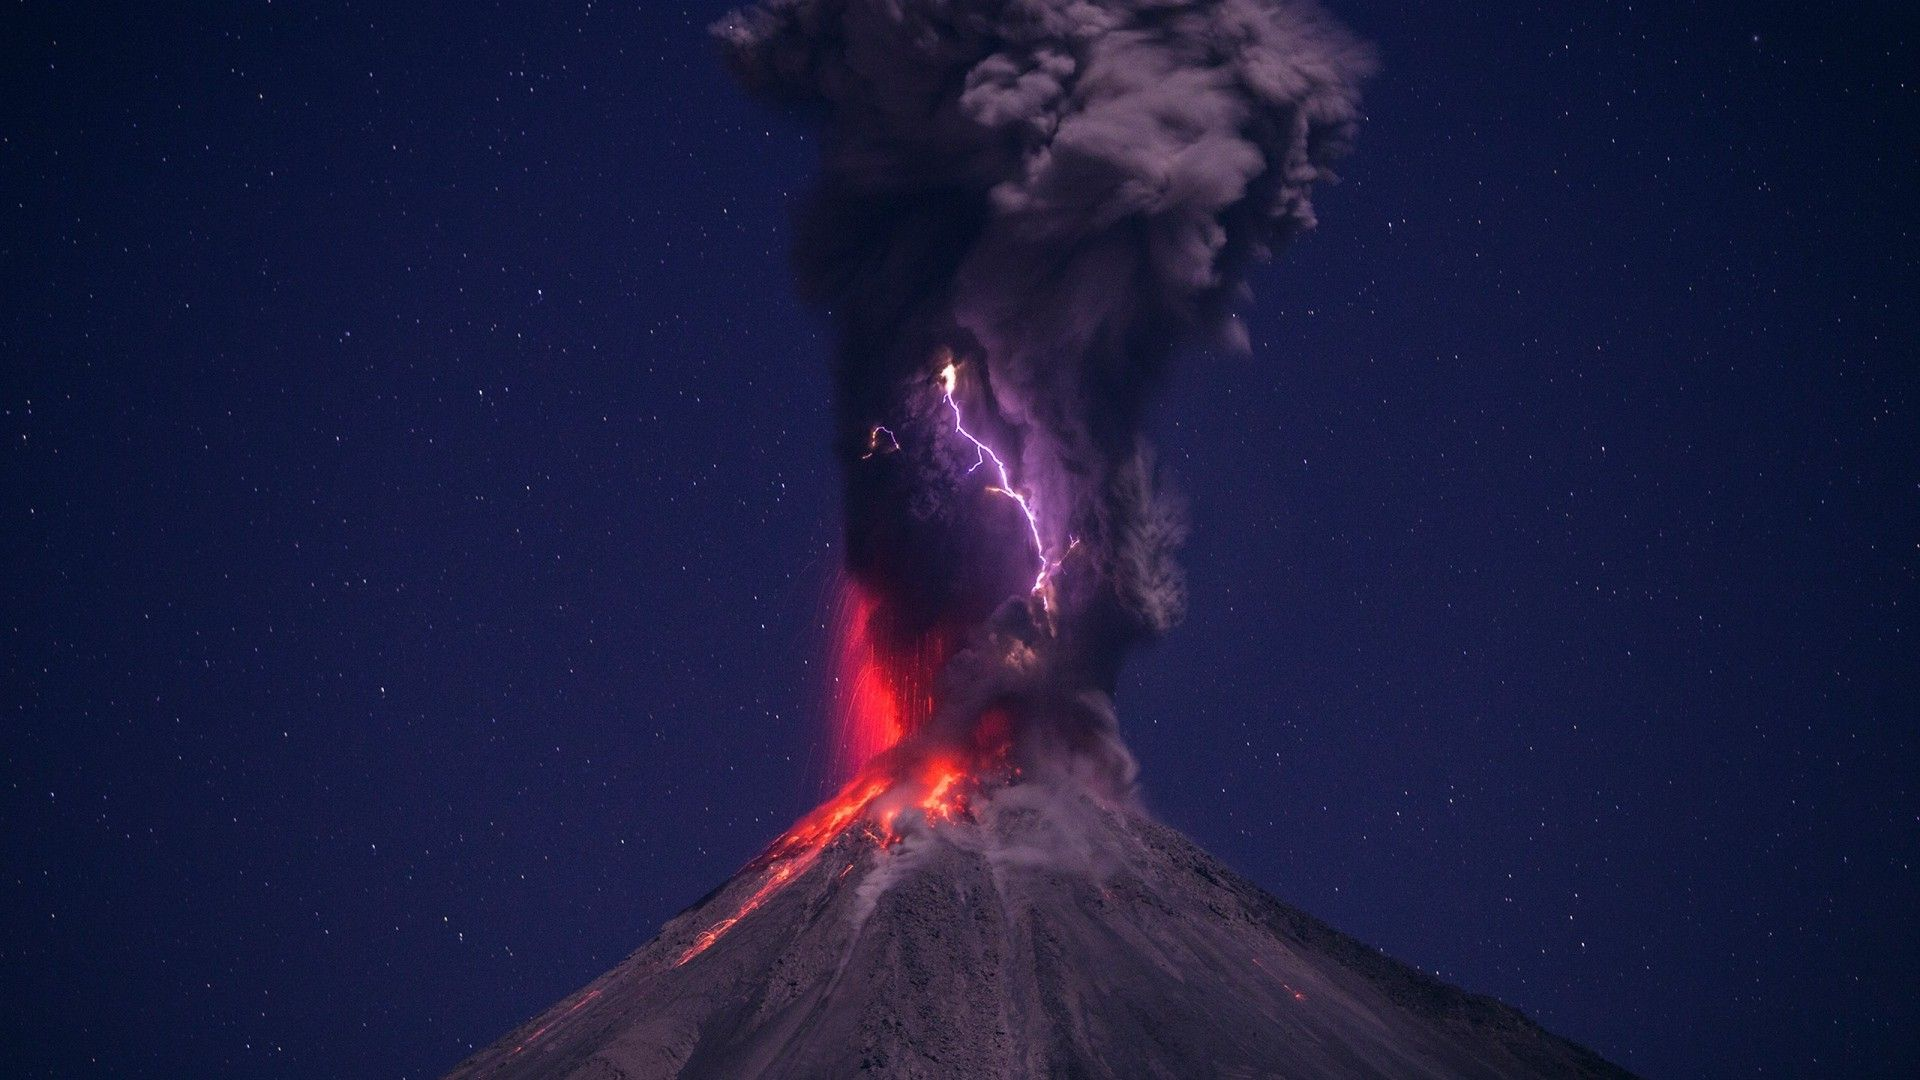 Volcano Wallpapers Hd: Download Hd Wallpapers Of 205539-nature, Landscape